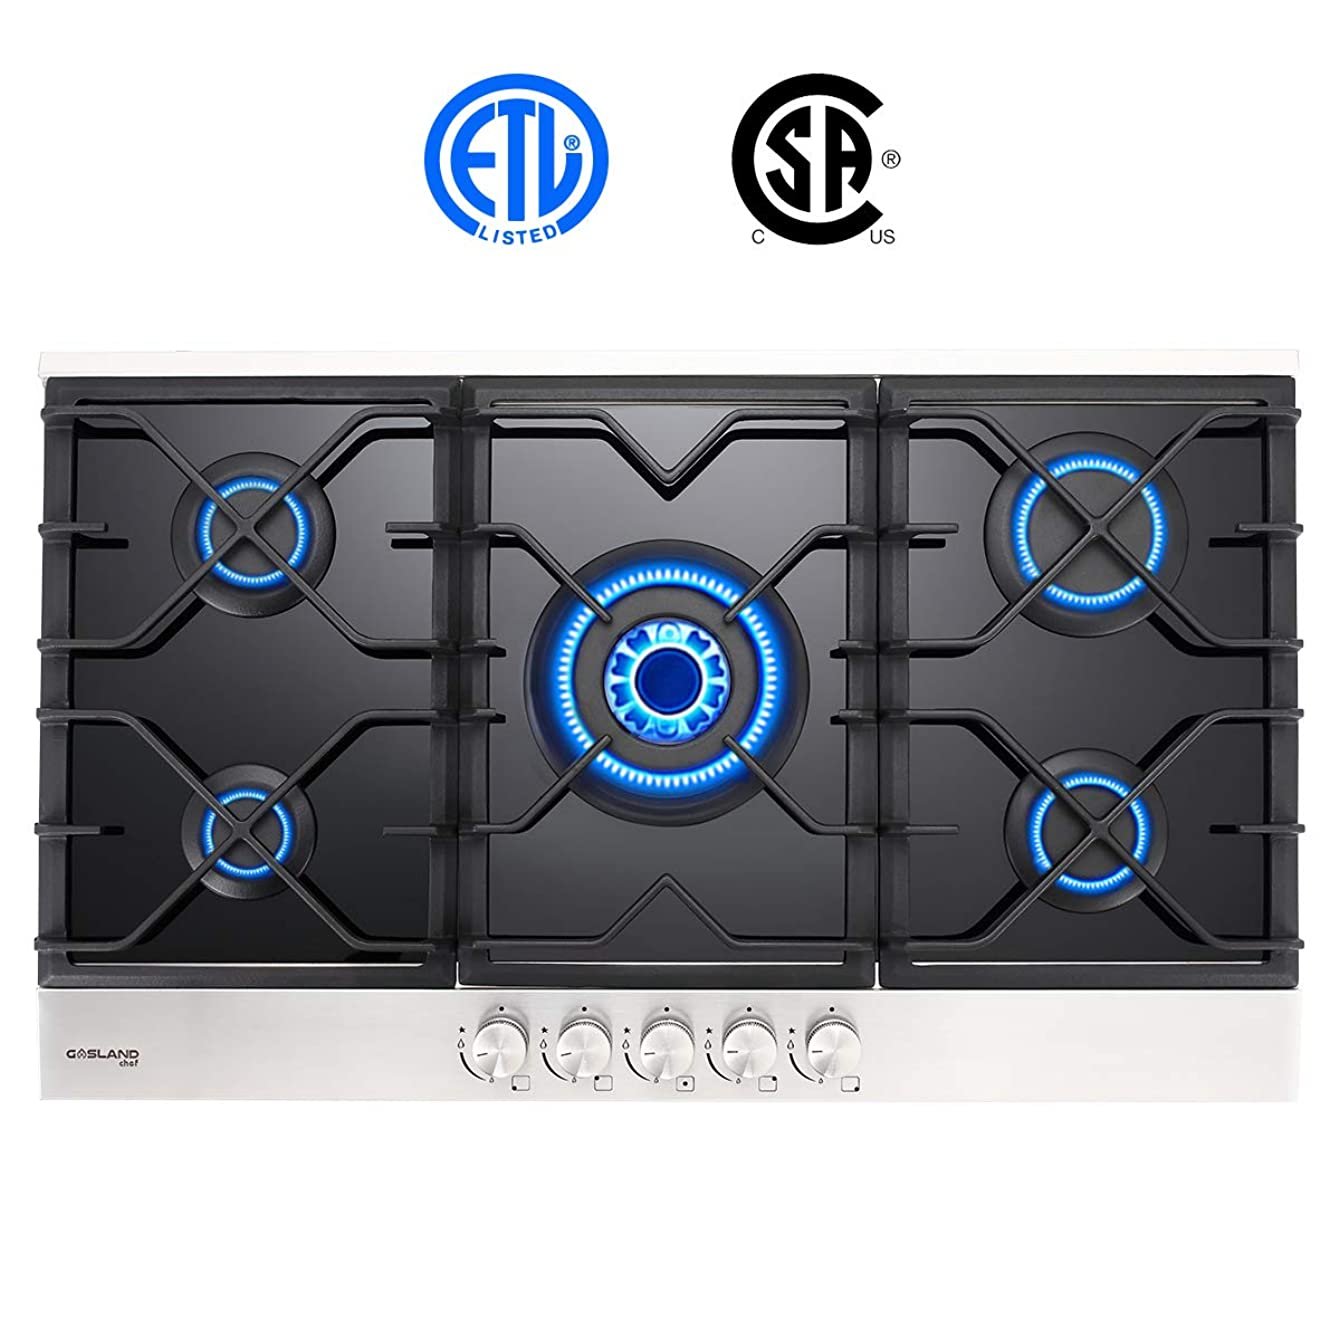 Gas Cooktop, Gasland chef GH90BF 36'' Built-in Gas Stove Top, Tempered Glass LPG Natural Gas Cooktop, Gas Stove Top with 5 Sealed Burners, ETL Safety Certified, Thermocouple Protection & Easy To Clean